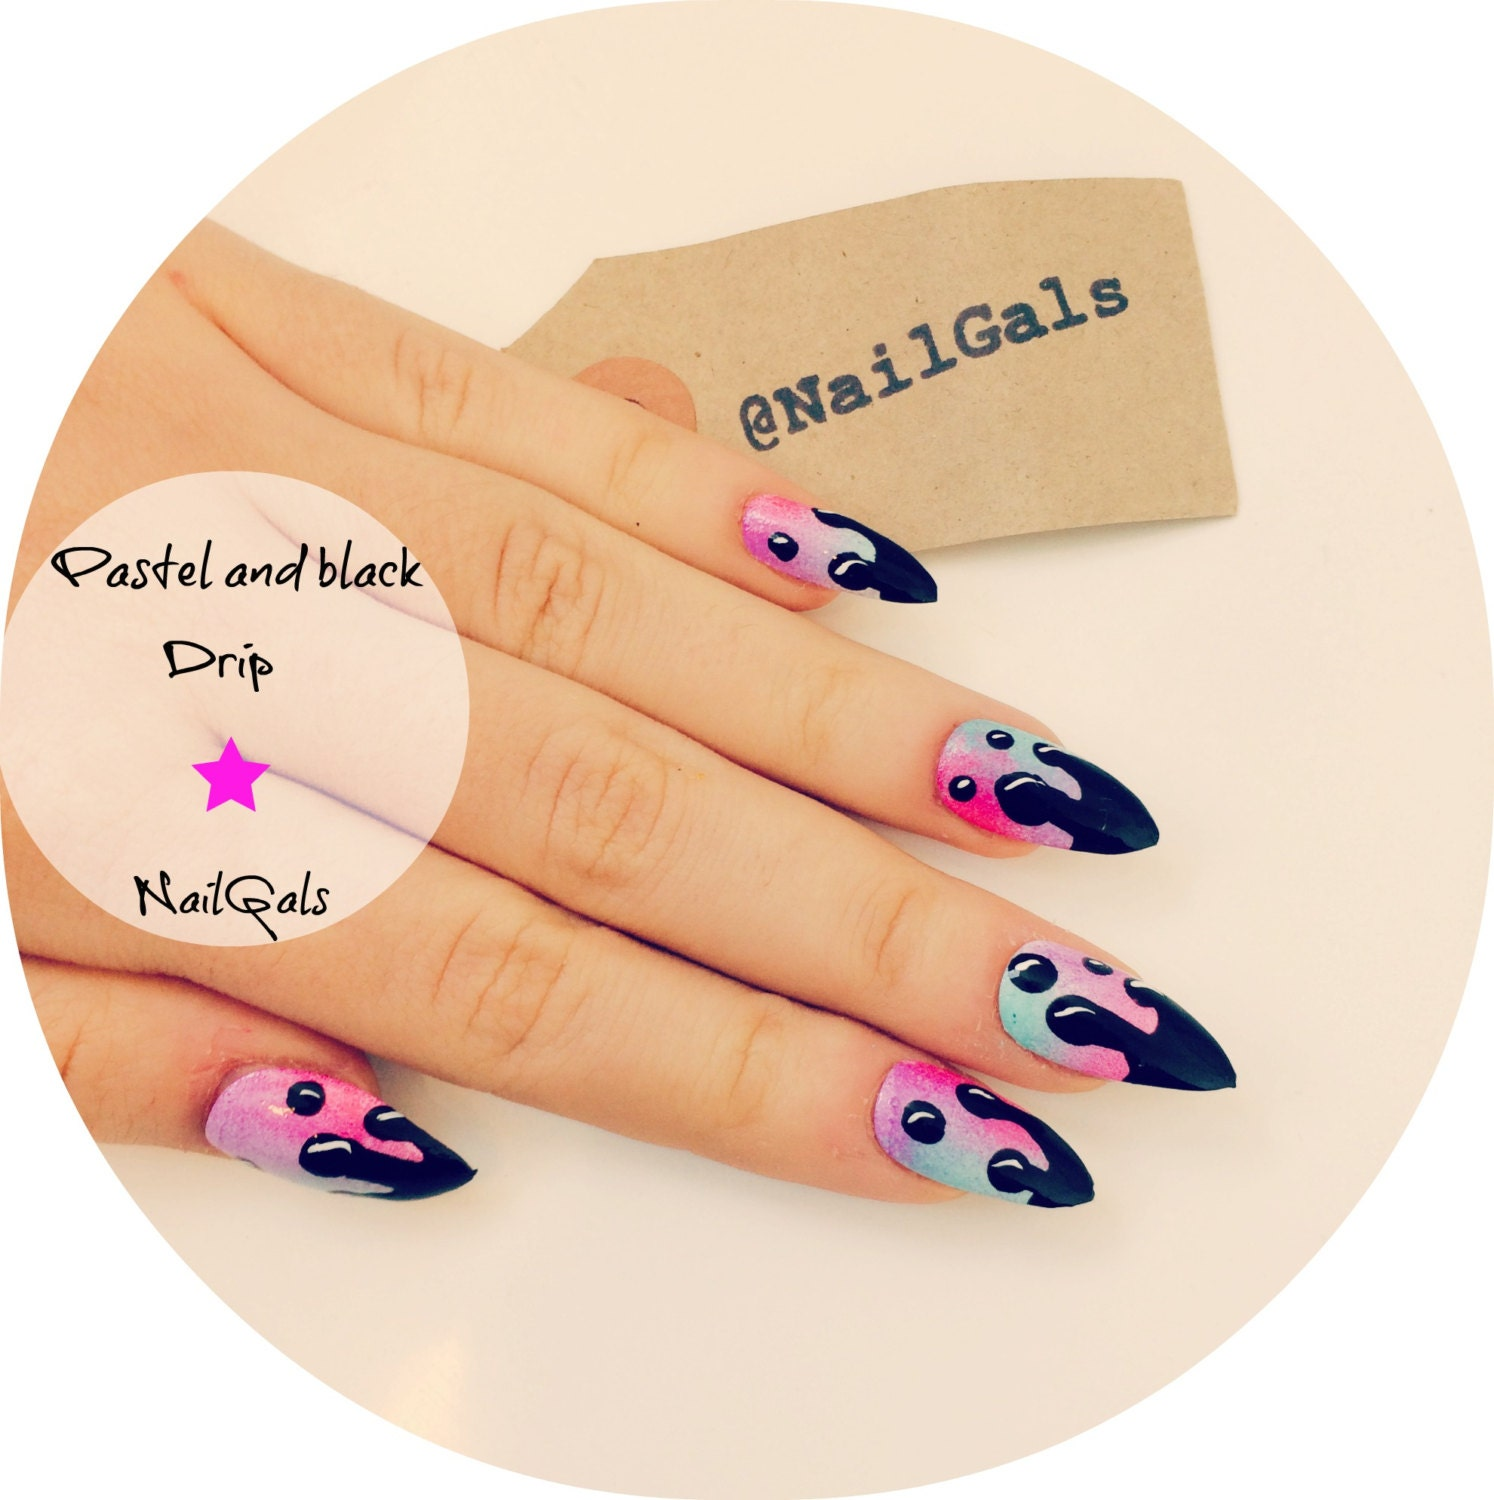 Today Live Sports: Matte or Glossy Pastel and Black Drip Stiletto ...